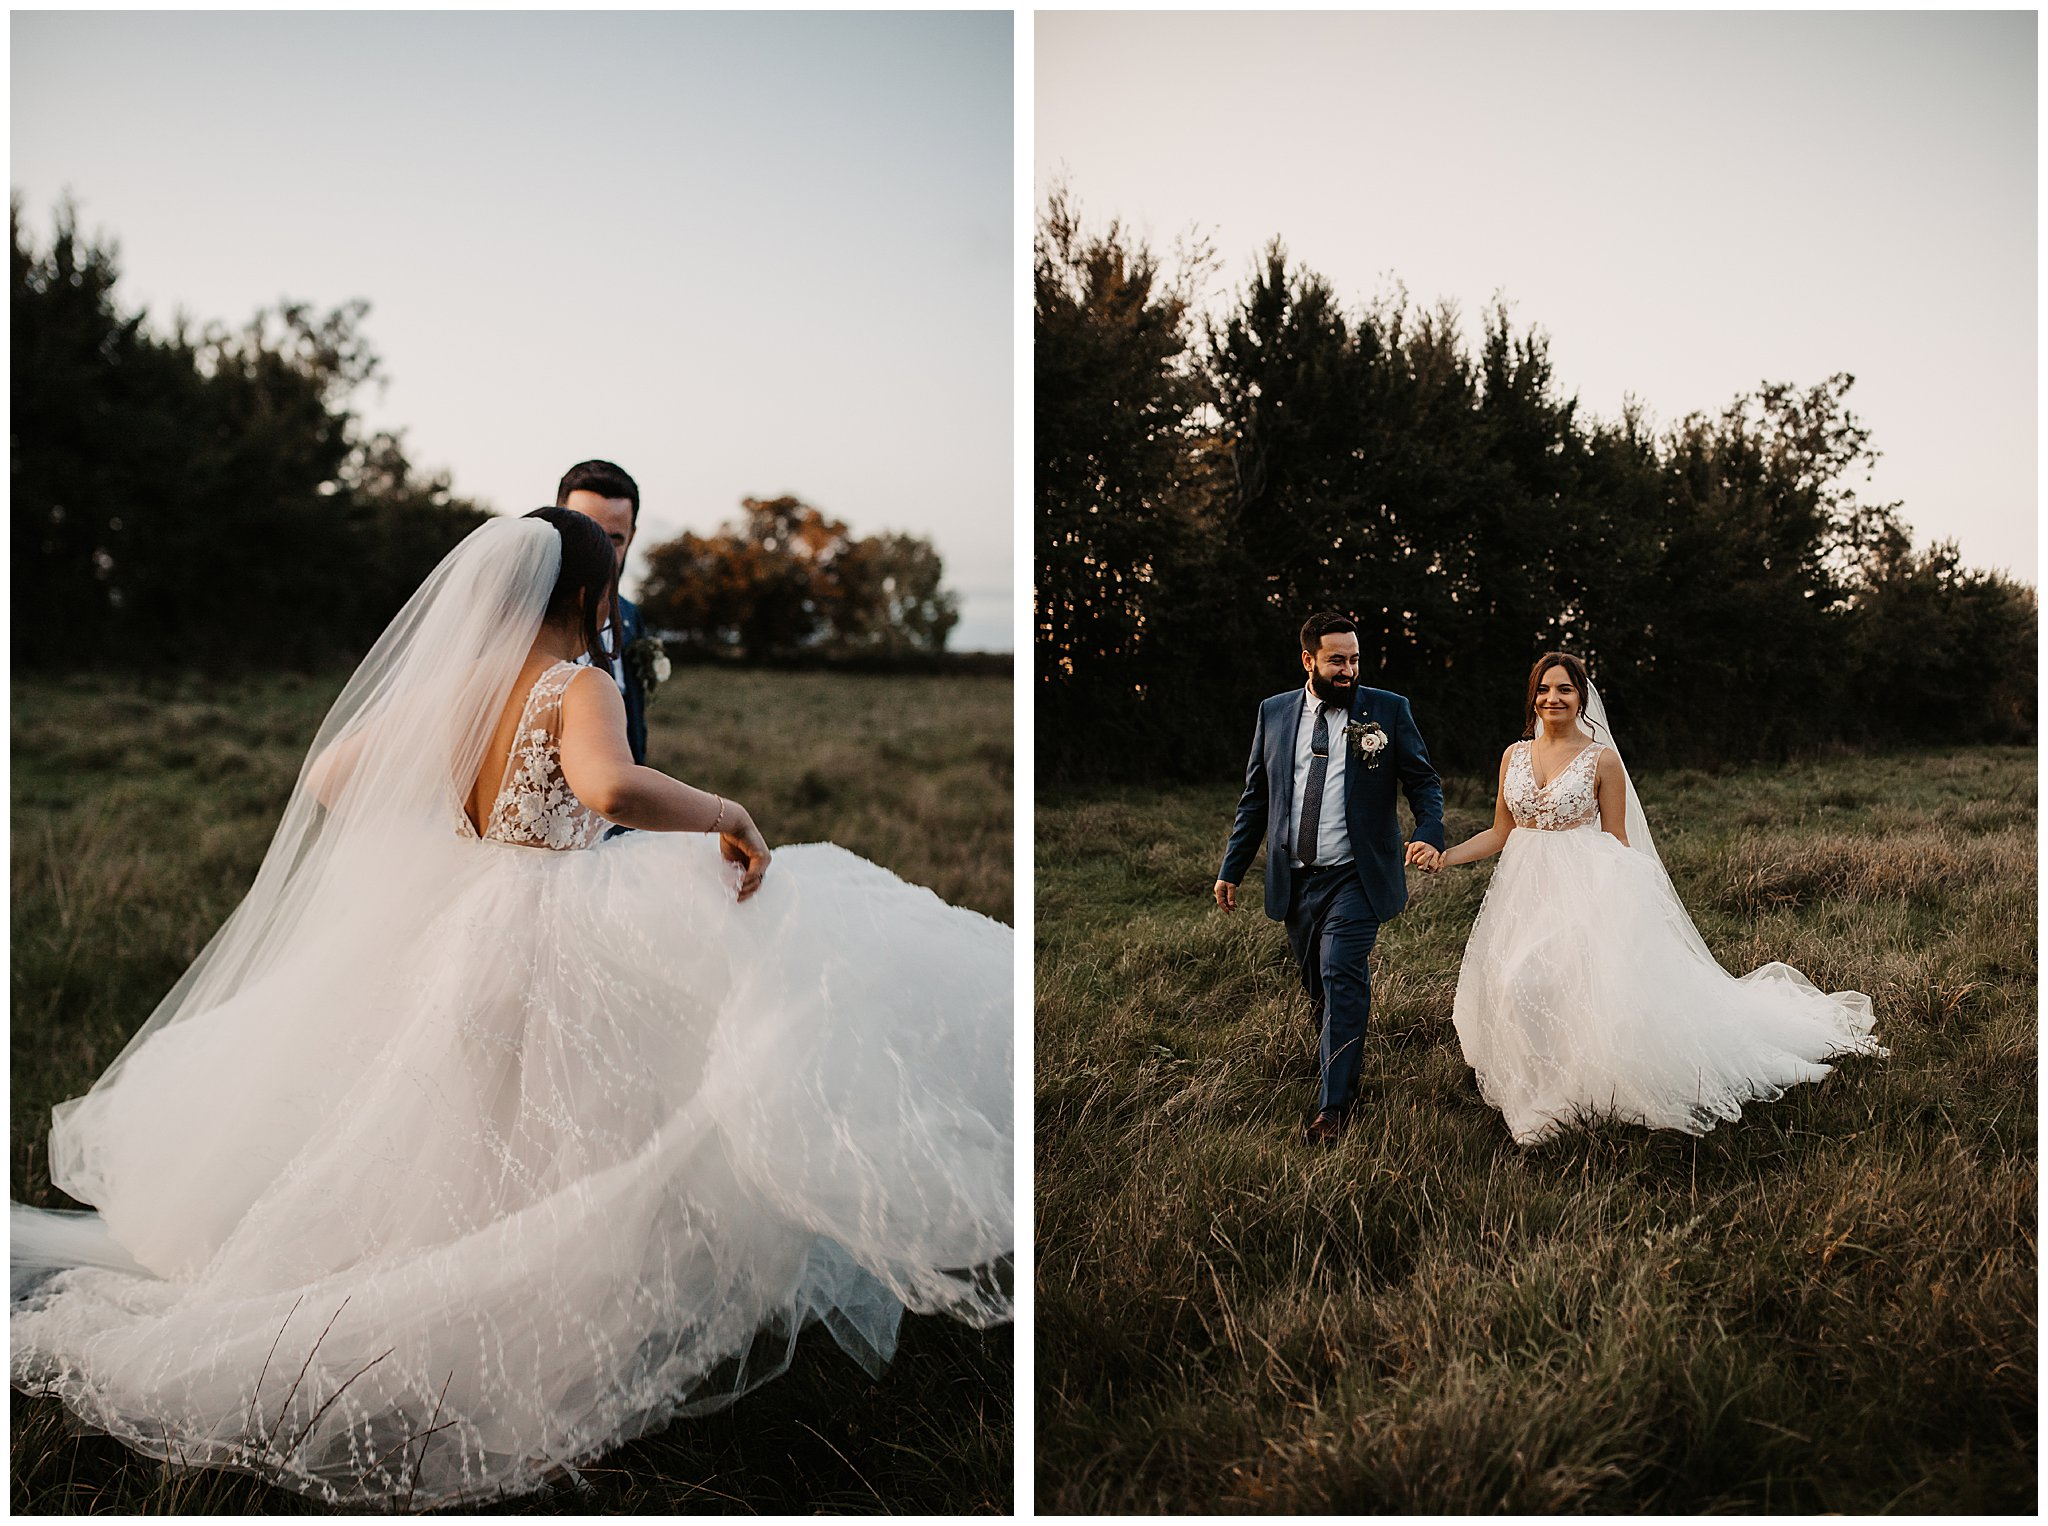 Max & Ksenia Autumnal Wiltshire Wedding-800.jpg